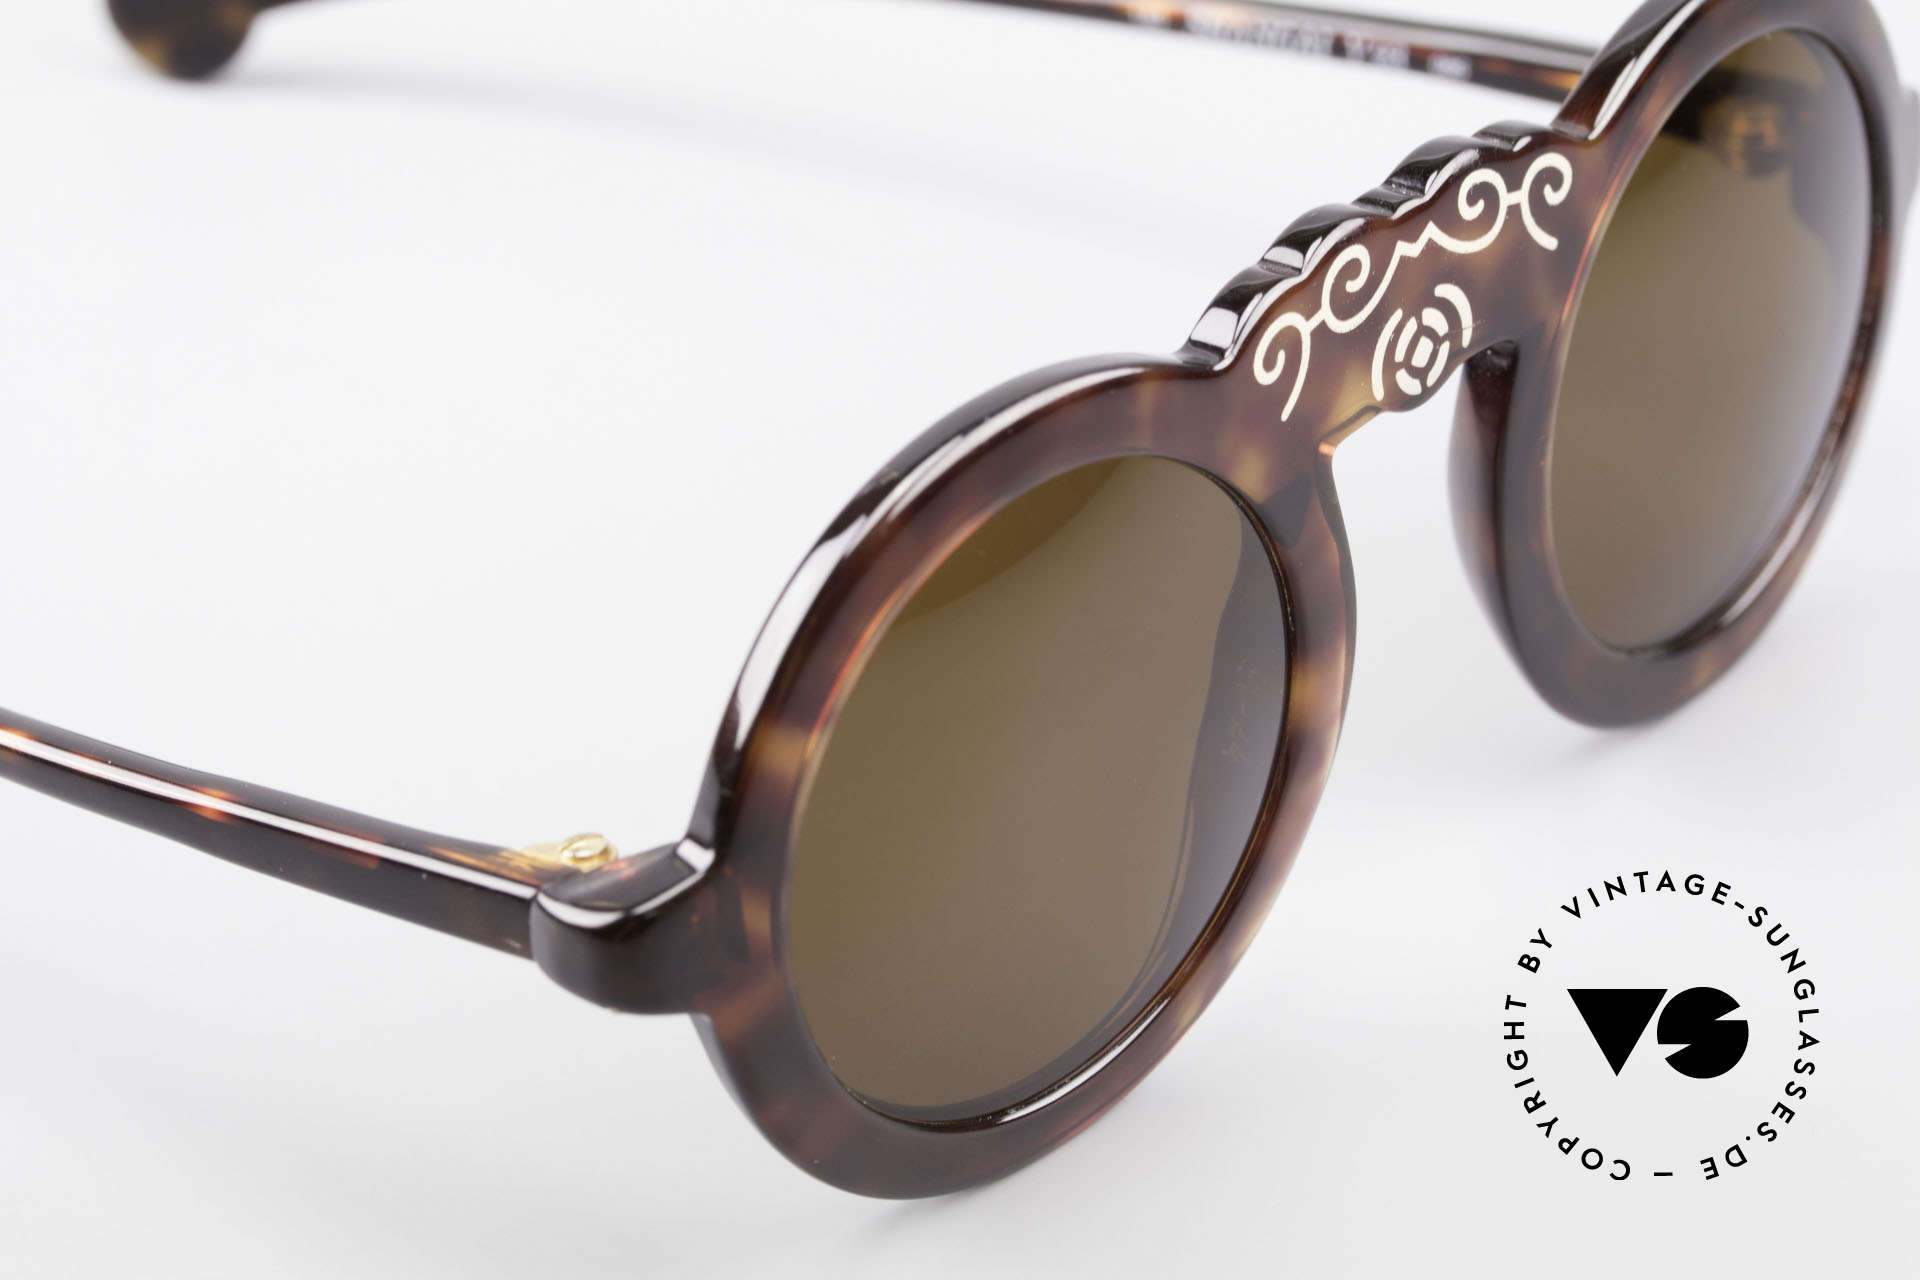 Laura Biagiotti V93 Shangai True Vintage 70's Sunglasses, NO retro fashion, but an app. 40 years old original, Made for Women